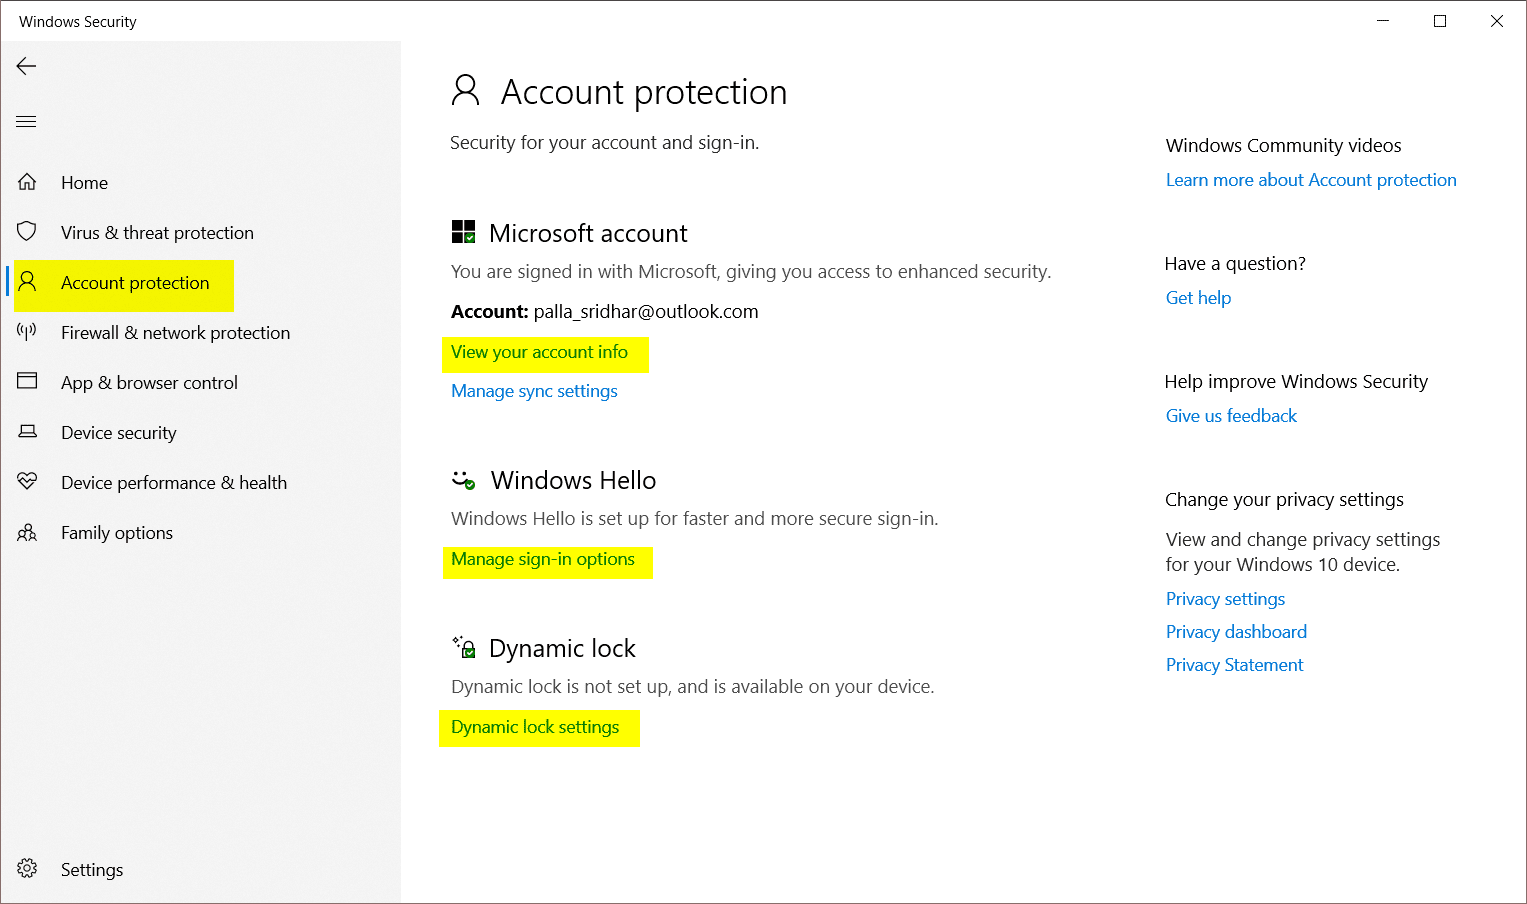 http://server.digimetriq.com/wp-content/uploads/2020/12/1608653291_6_10-Robust-features-of-Microsoft-Defender-for-Extra-Protection-of.png